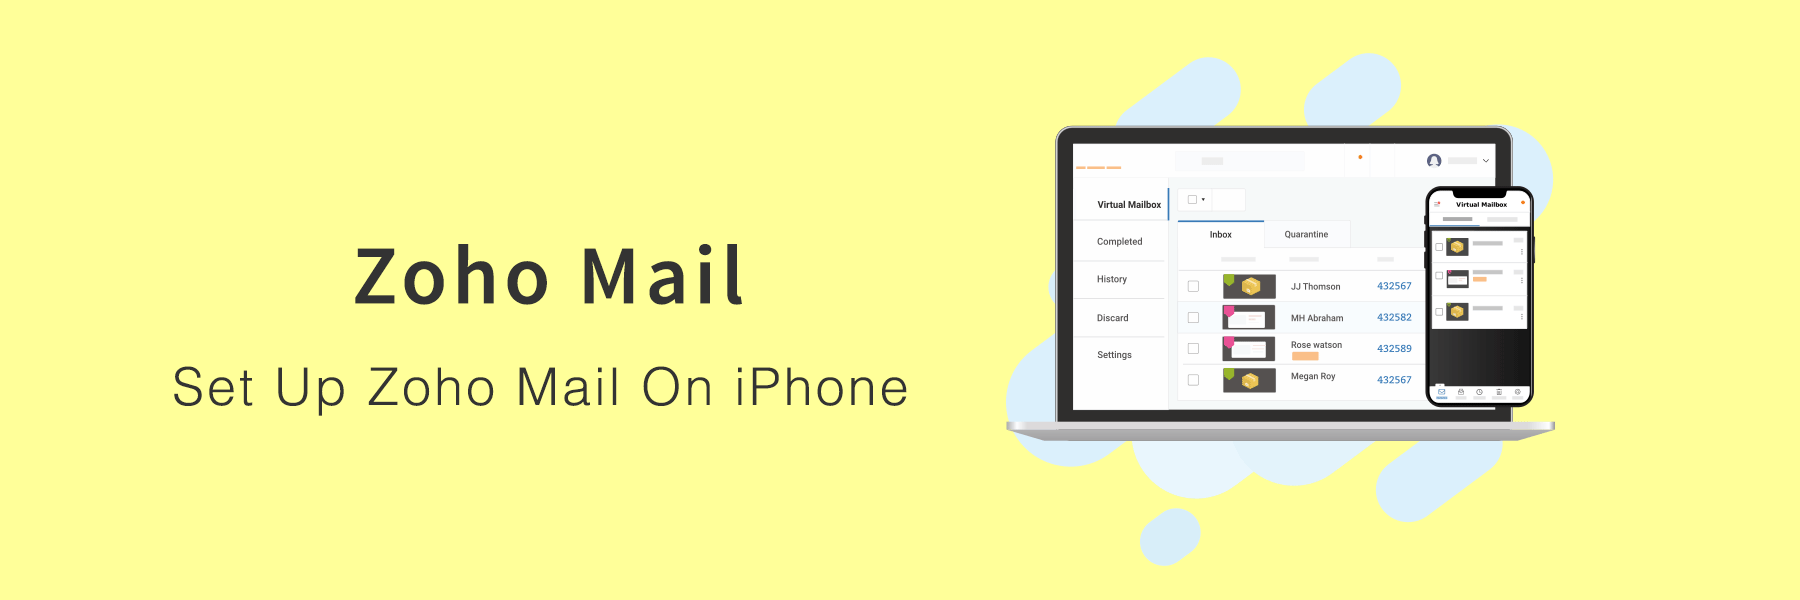 How To Set Up Zoho Mail On iPhone